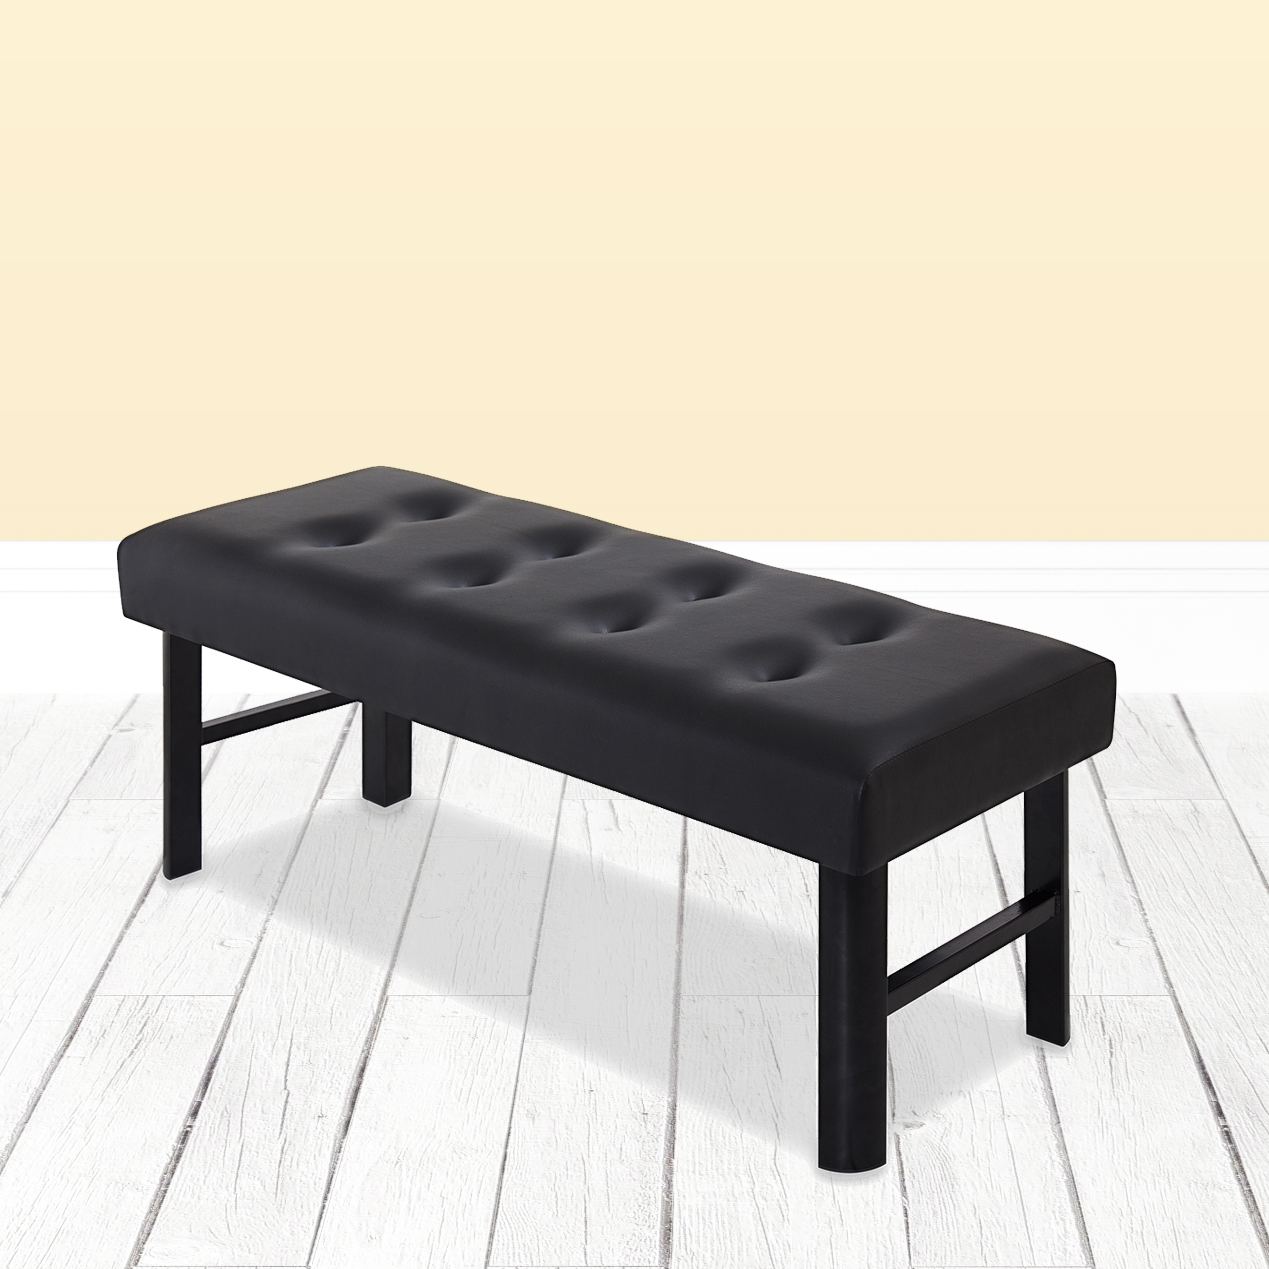 "GranRest 18"" Tall Upholstered Bed Bench Faux Leather, Black"